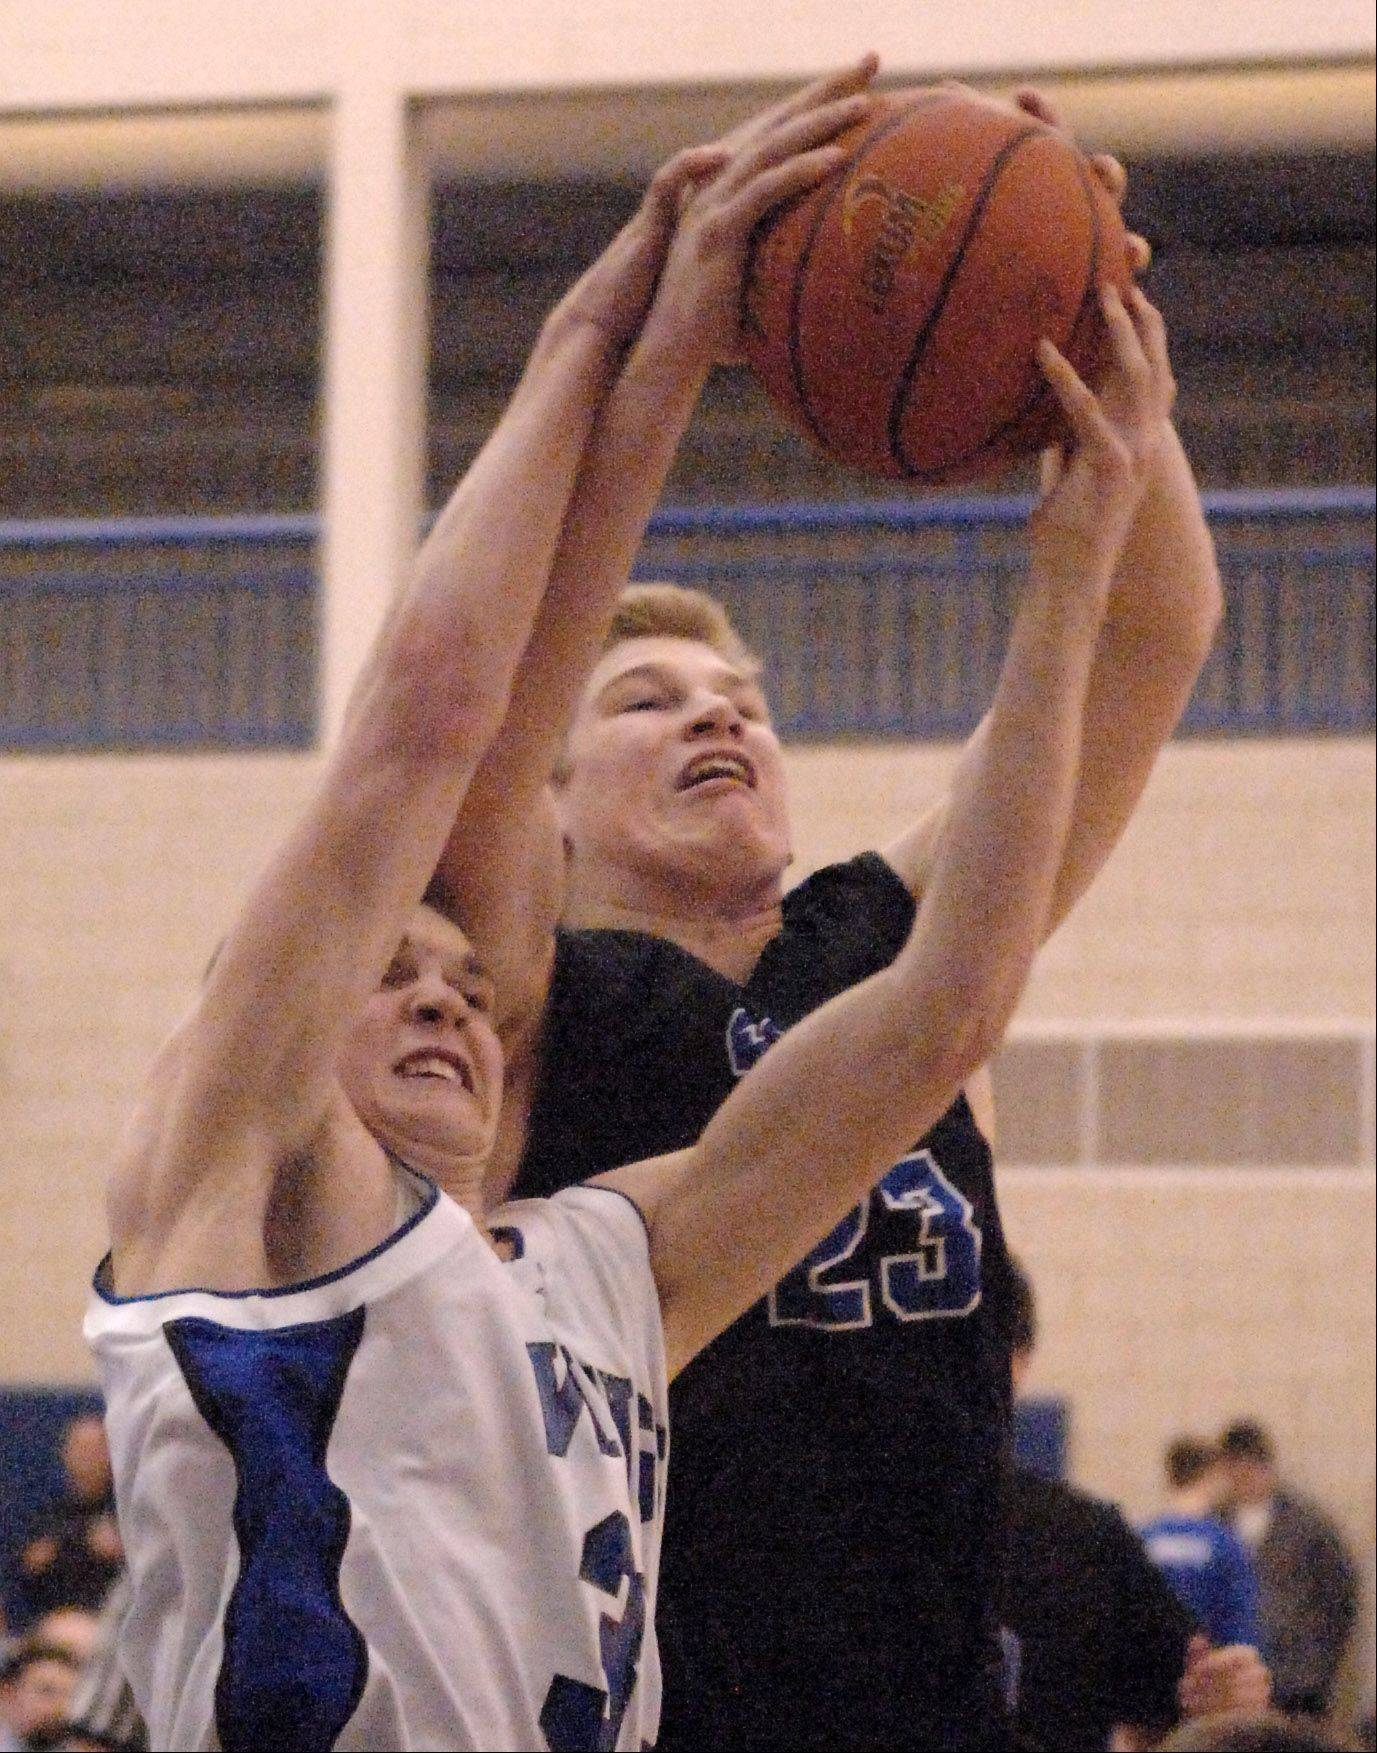 Images from the St. Charles North vs. Geneva boys basketball game Friday, February 15, 2013.